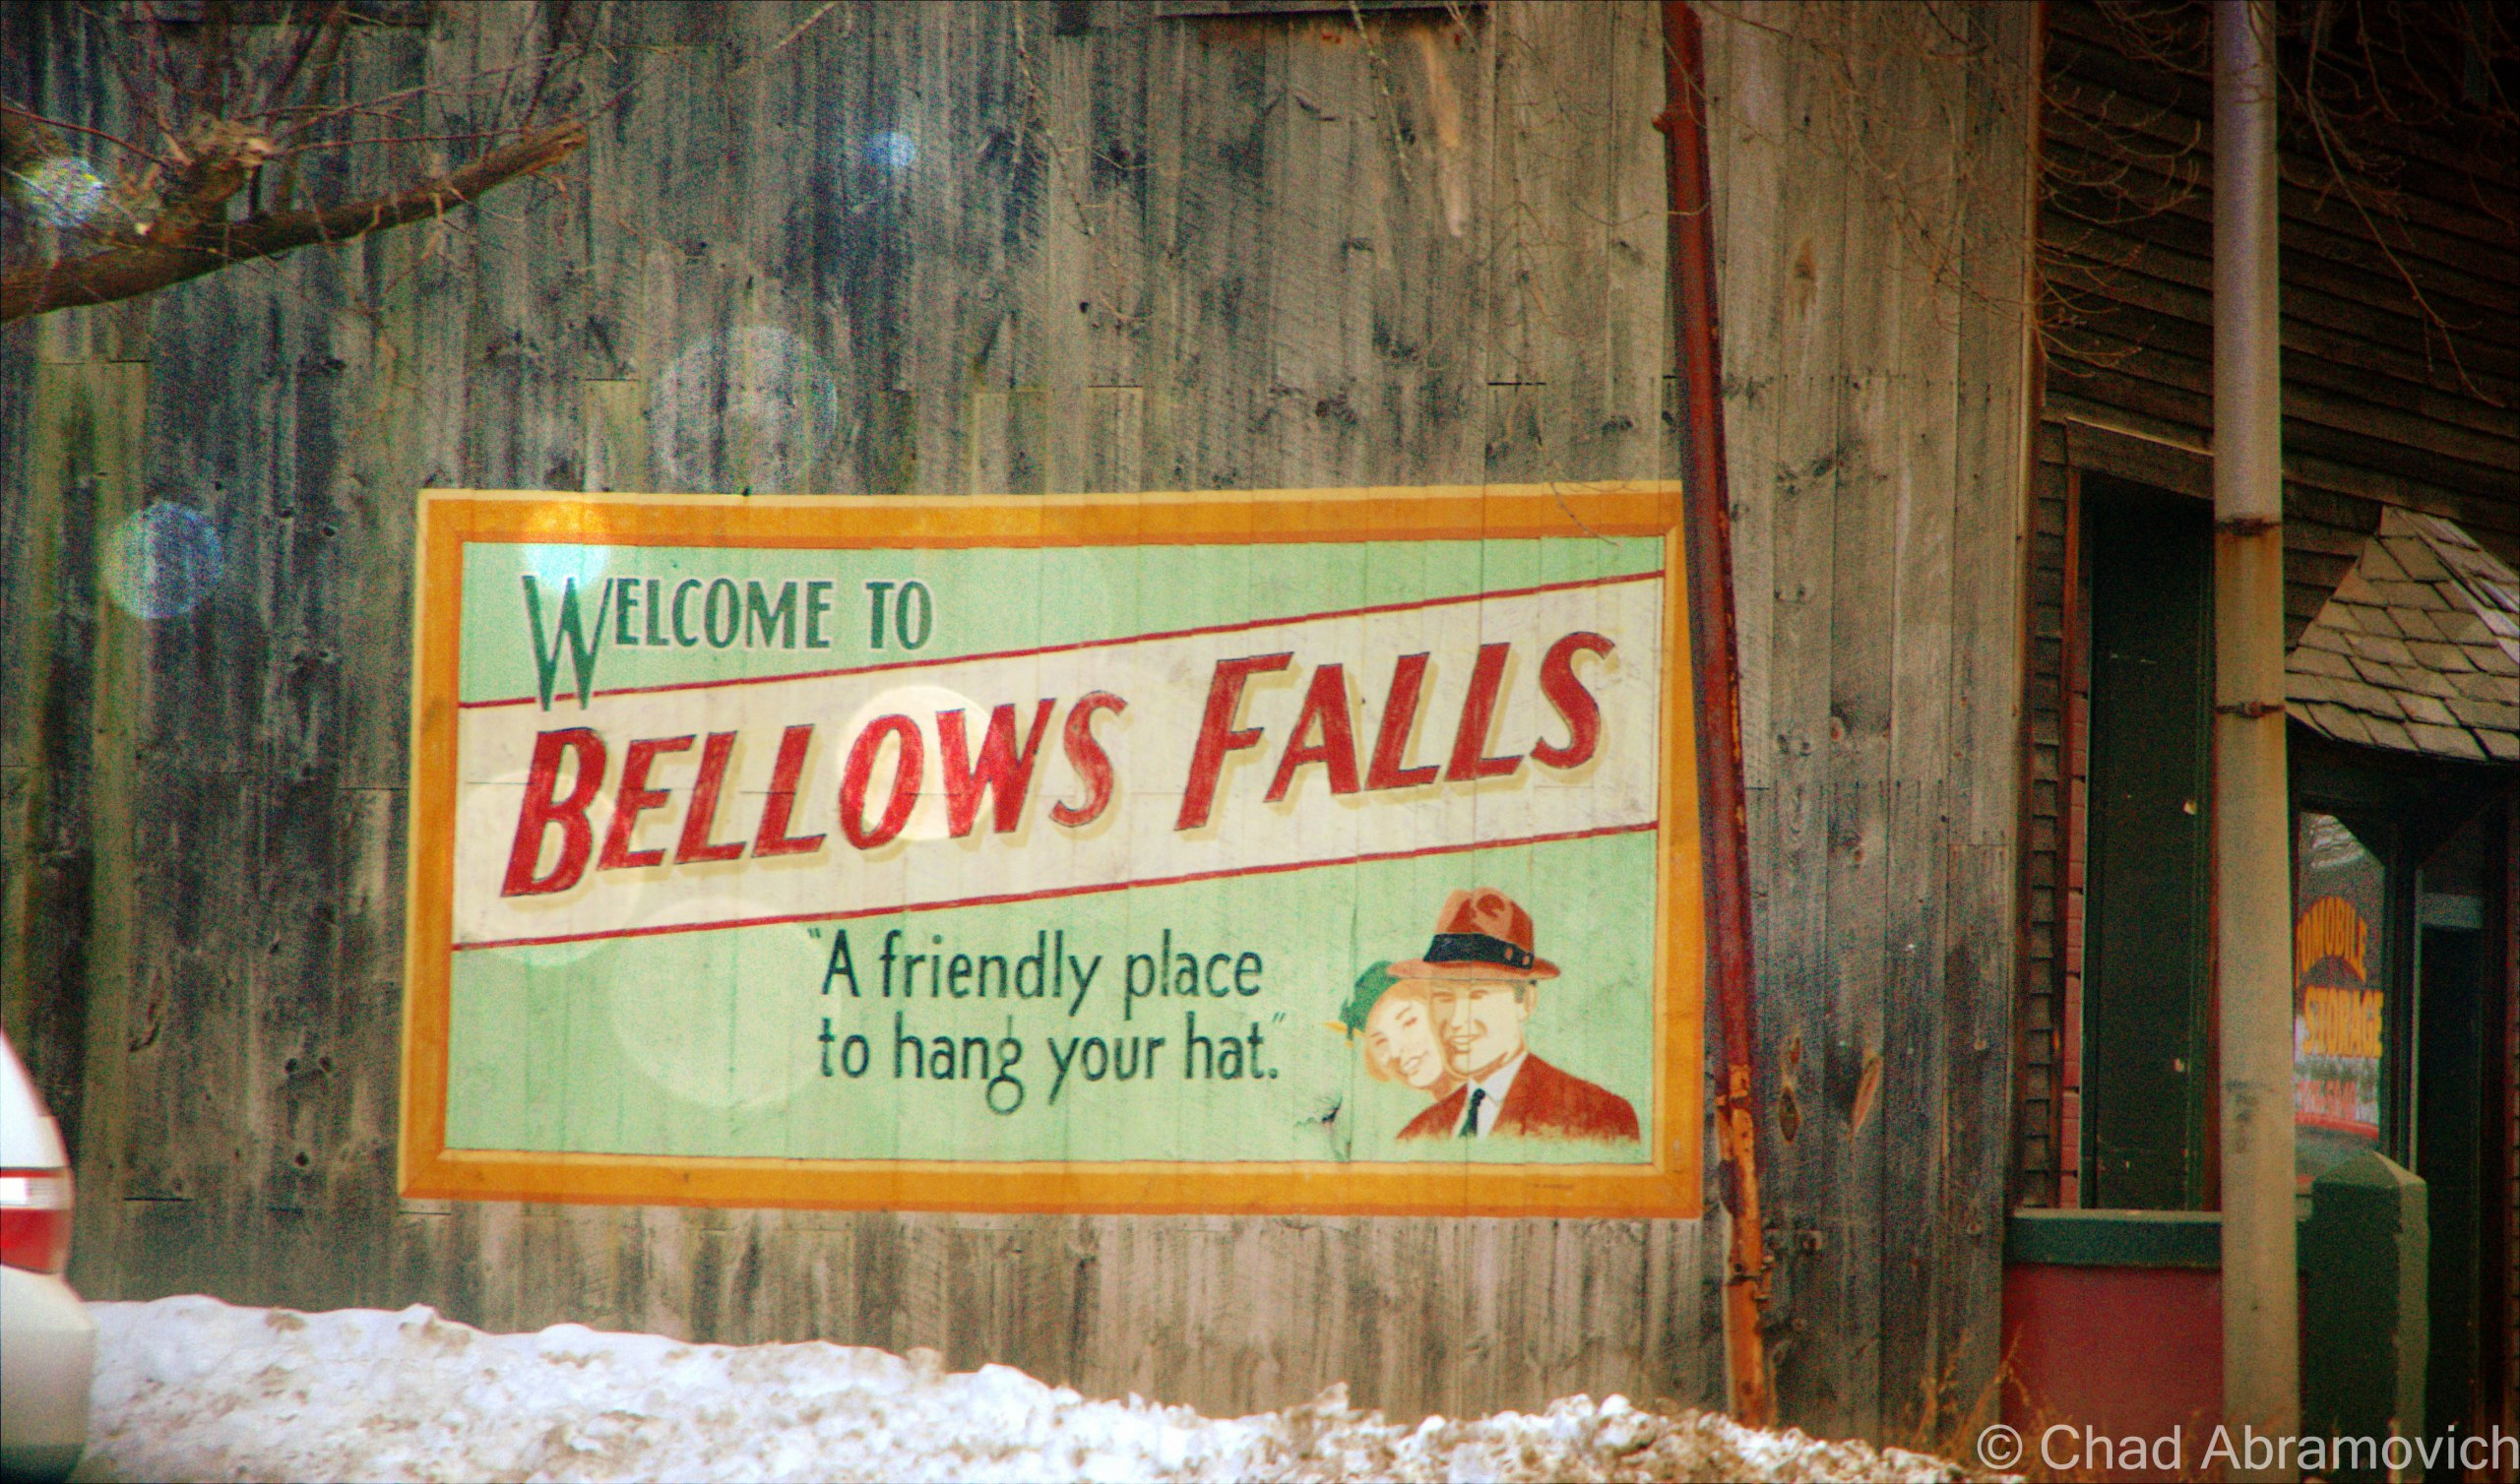 One of my favorite things about Bellows Falls were the cool retro advertisements around town that conjured images of classic Americana. There is even a billboard promoting the town, across the river in New Hampshire of course.